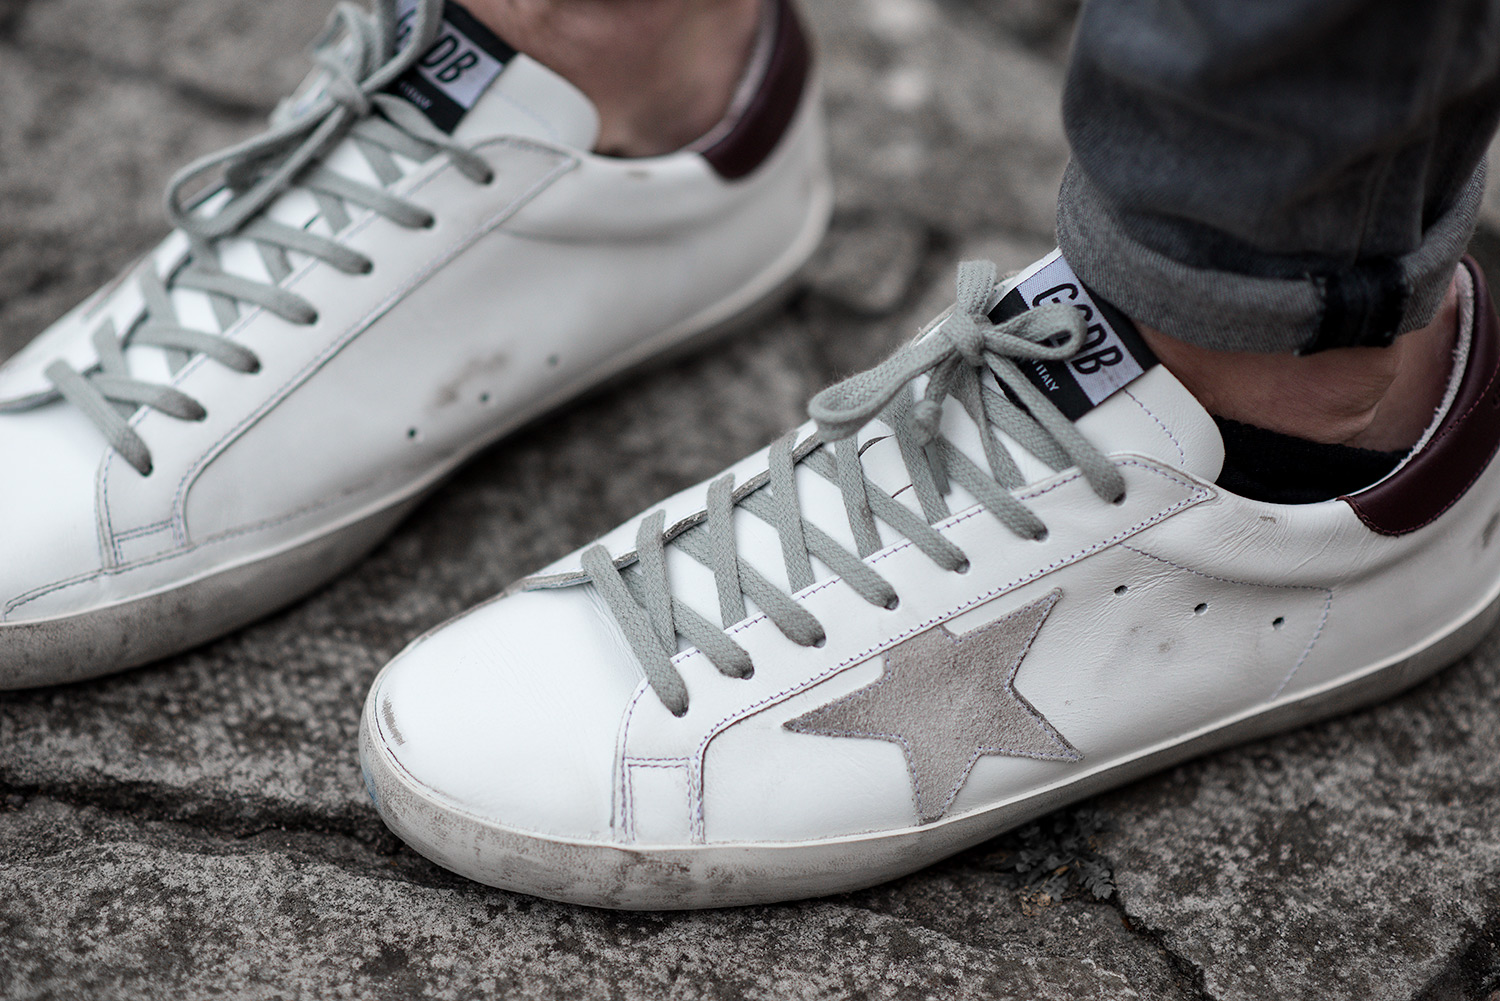 7bd49e7a57f91f Golden Goose Deluxe Brand Sneakers Review